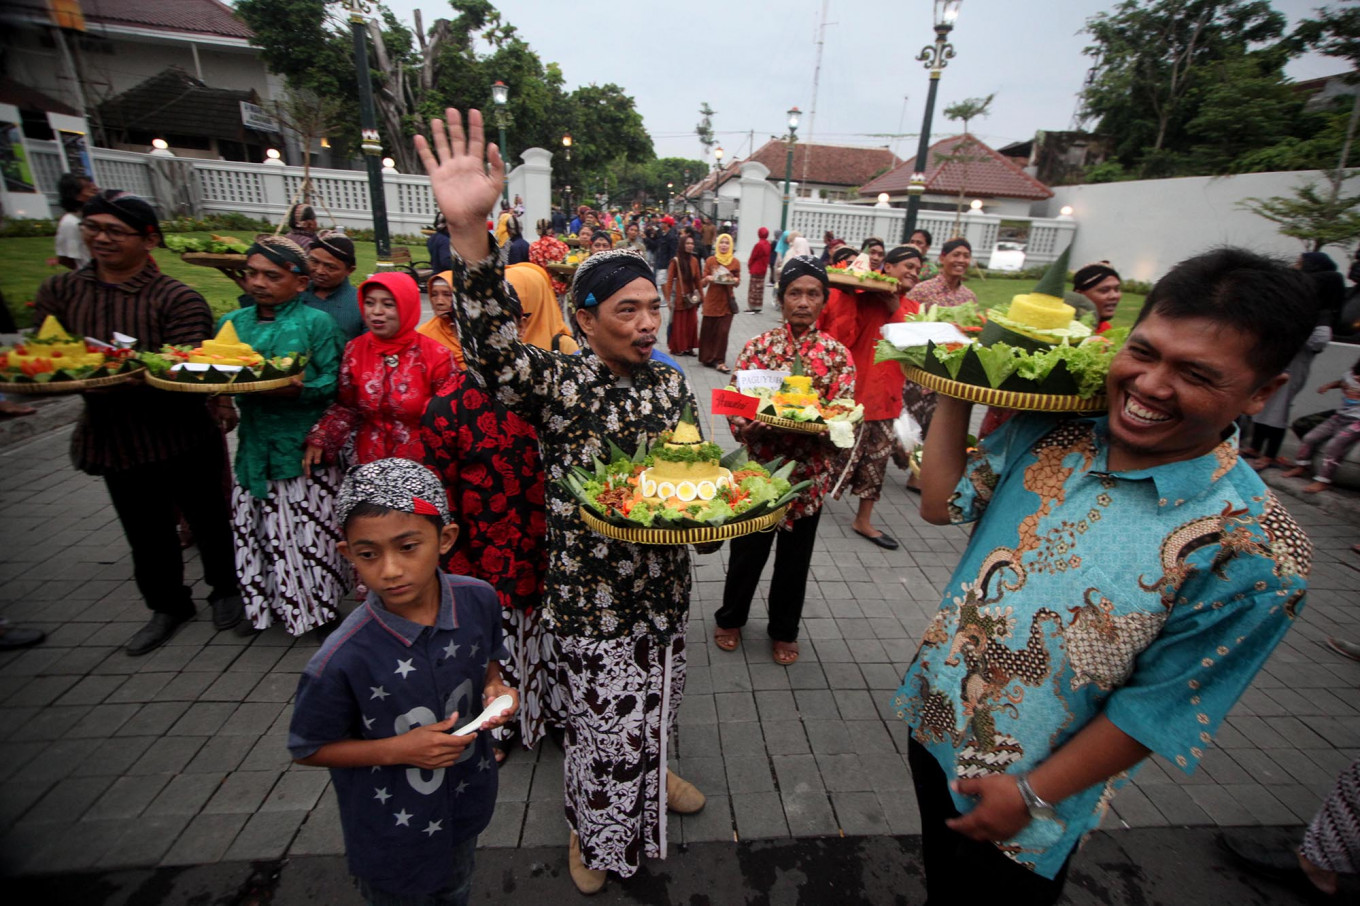 The tumpeng is ready to be shared with visitors and tourists in the Malioboro area. JP/Boy T. Harjanto